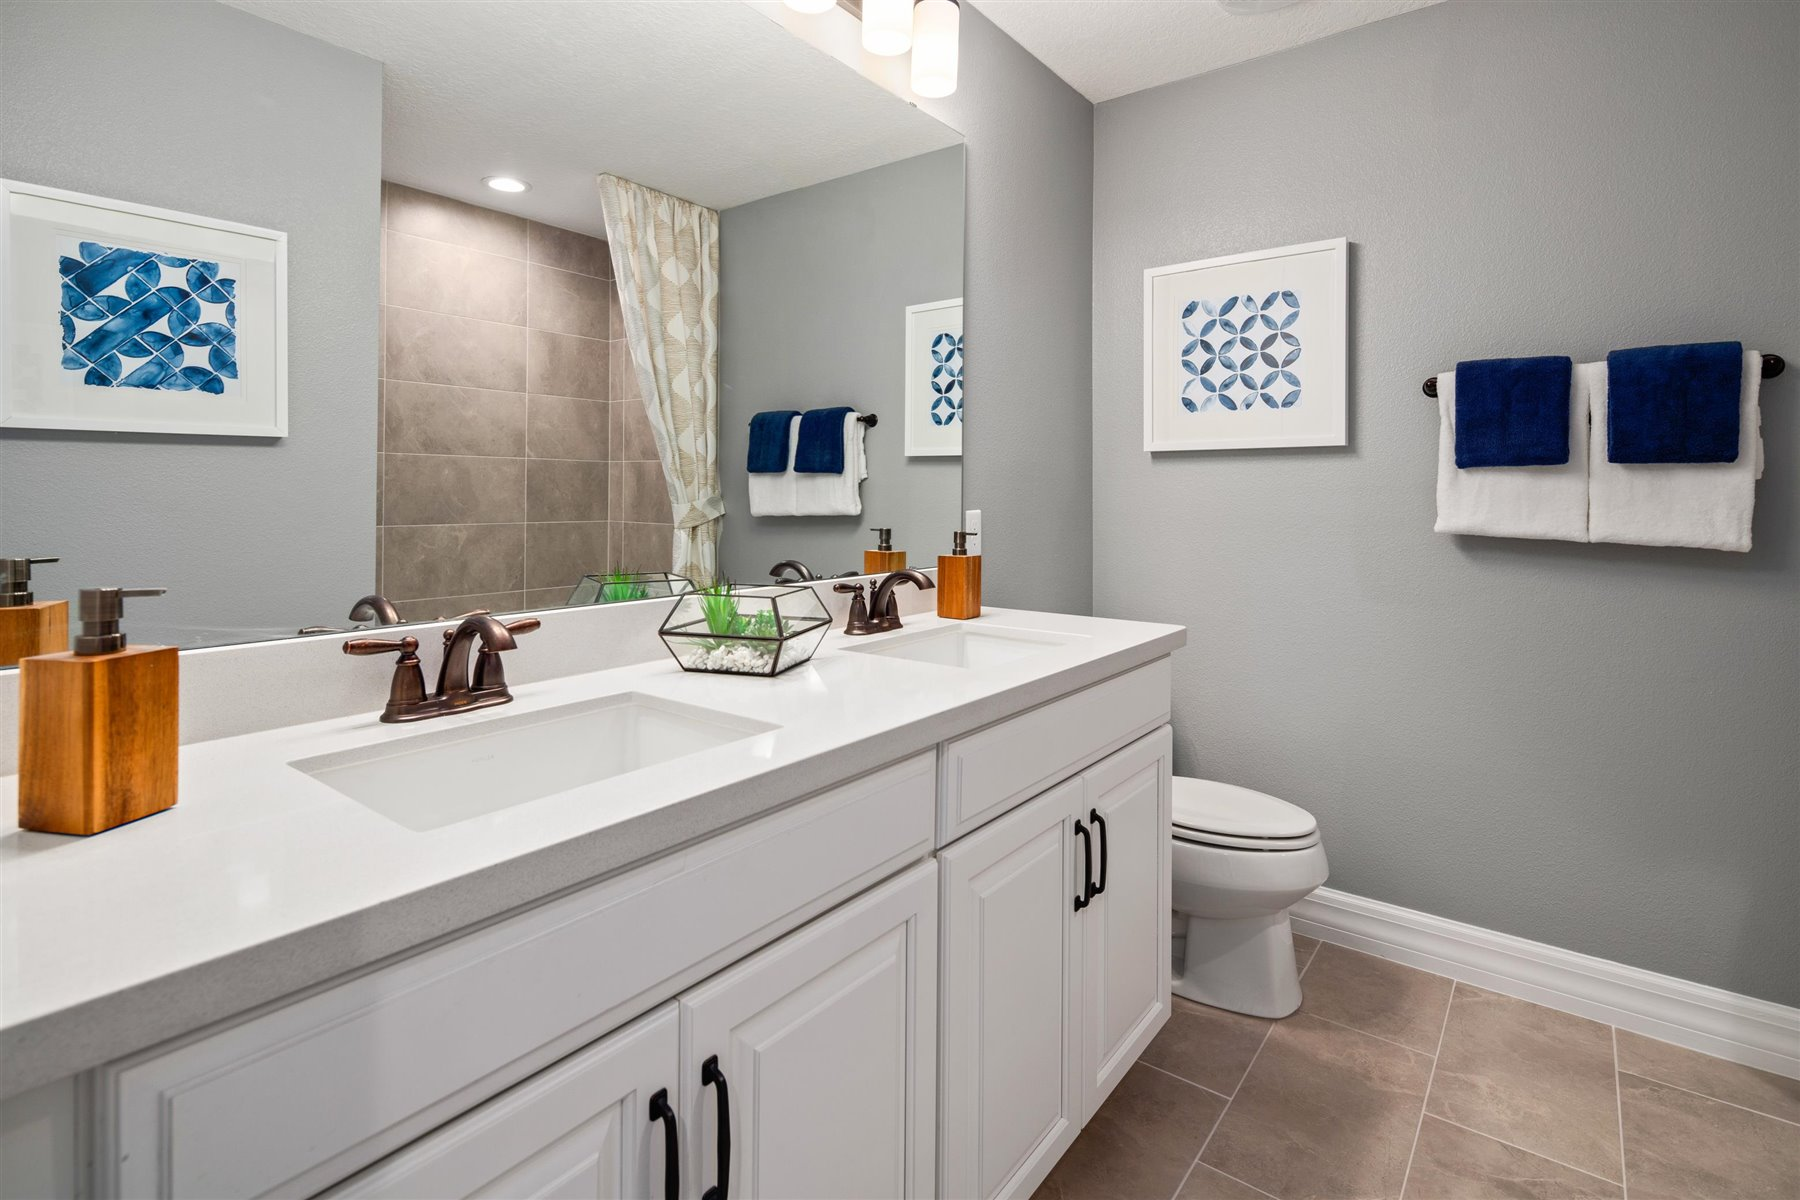 Selena III Plan Bath at Waterbrooke in Clermont Florida by Mattamy Homes